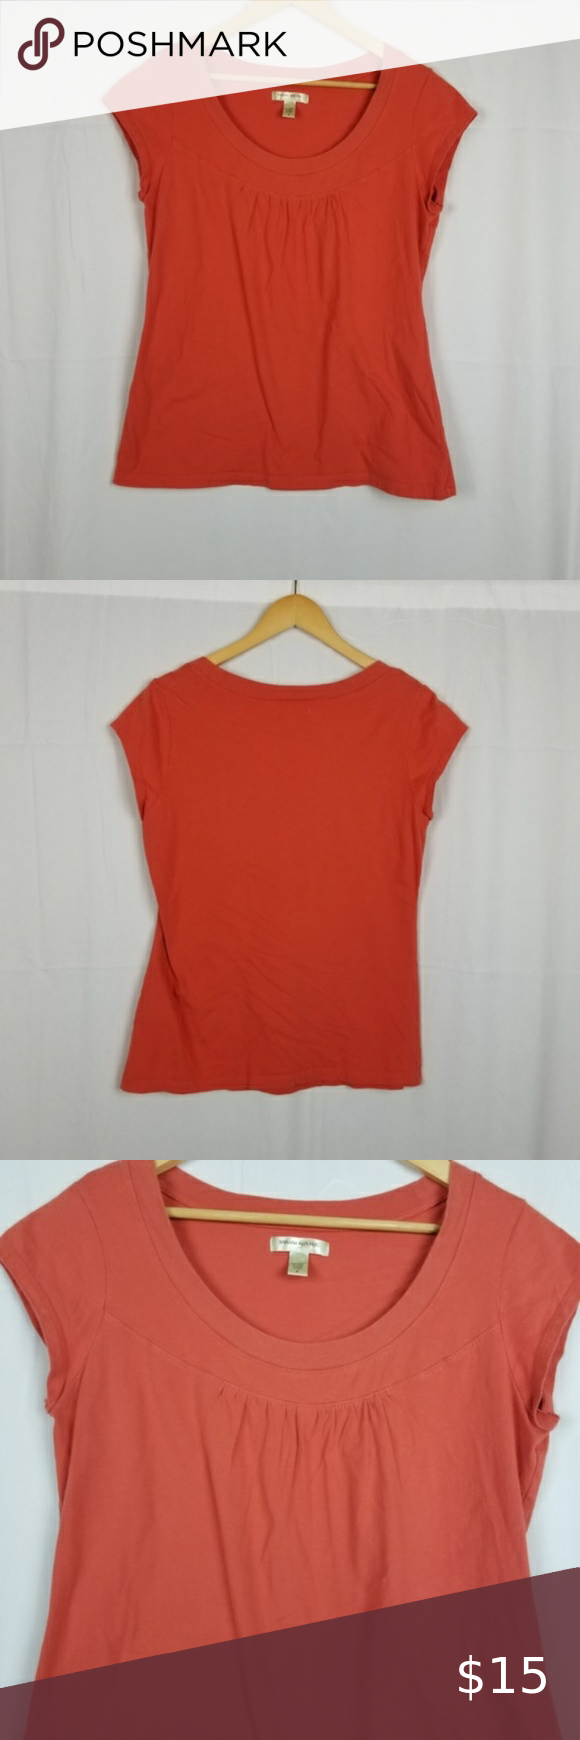 Banana Republic Factory Coral TShirt Size M in 2020